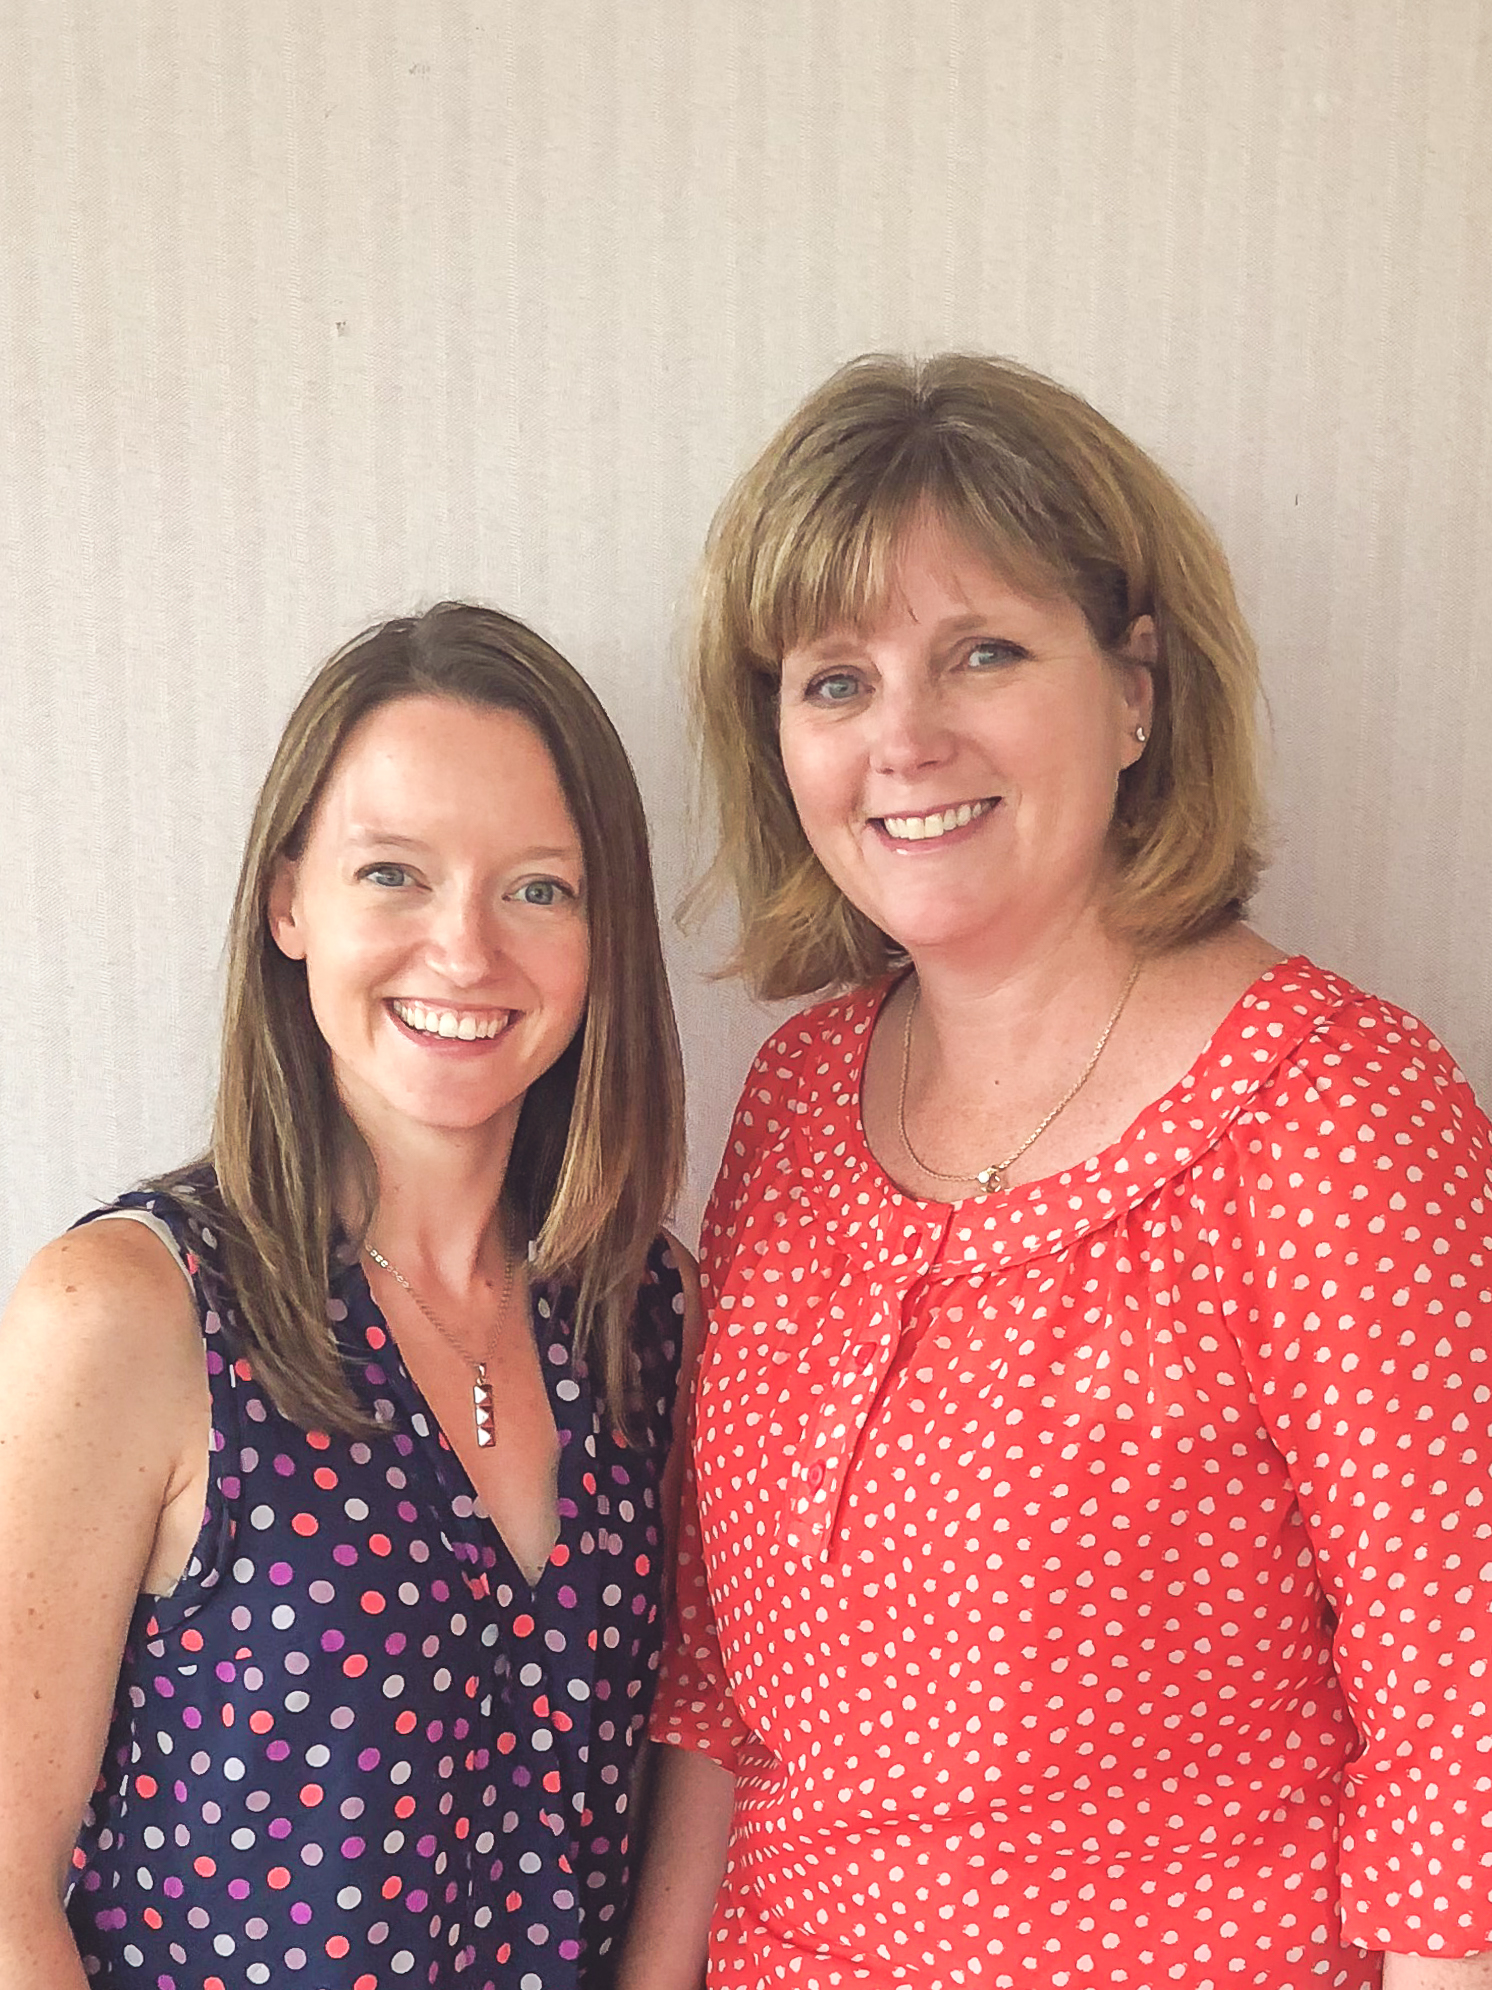 - Jackie and Megan have experience with both breastfeeding and bottle feeding issues. Both have also worked since having children, so understand the need of balancing work and home life.